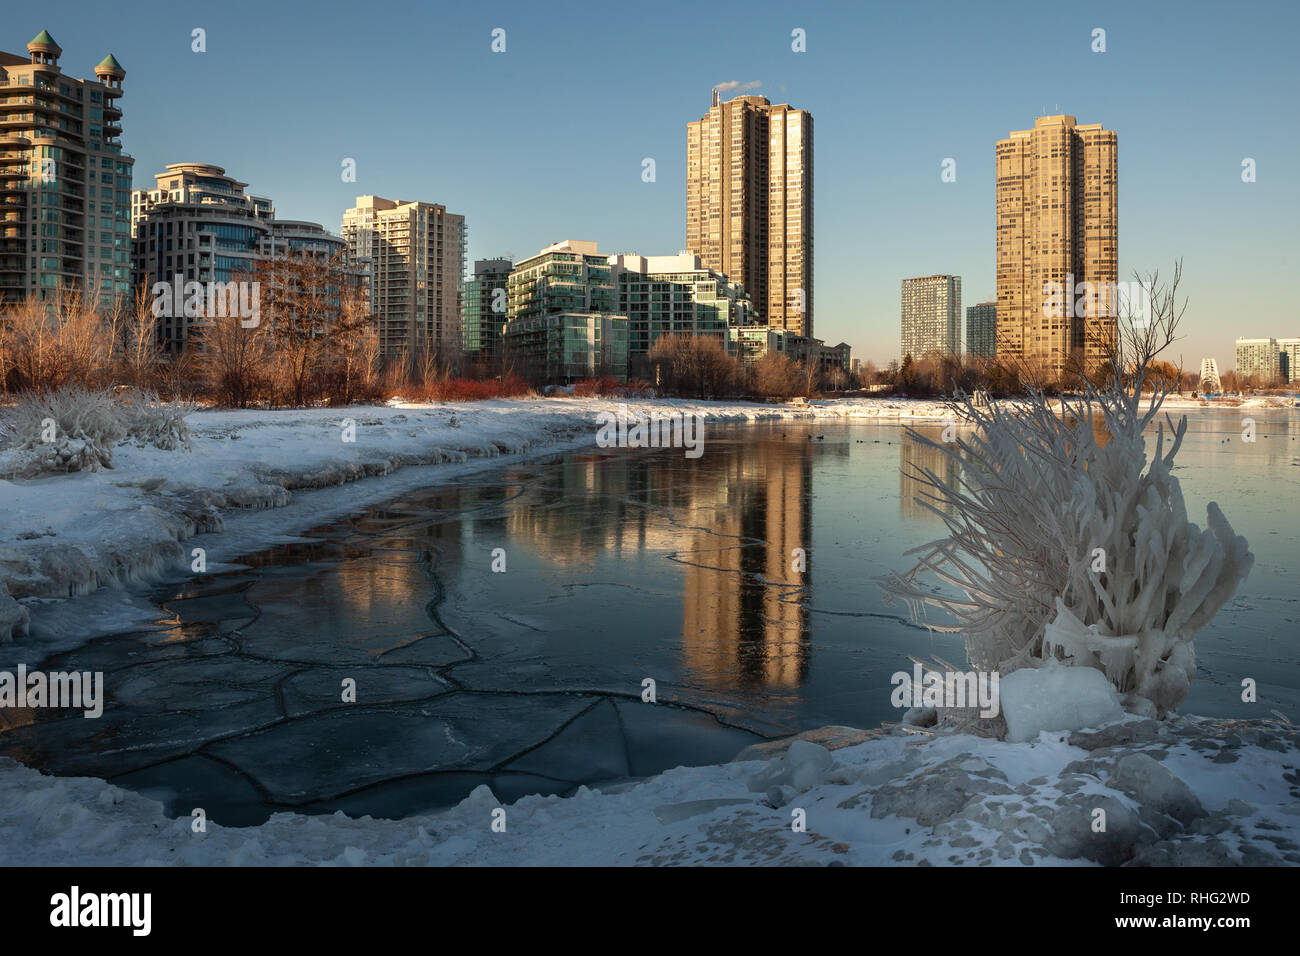 Panoramic Canadian winter landscape near Toronto, beautiful frozen Ontario lake at sunset. Scenery with winter trees, water and blue sky. Stock Photo